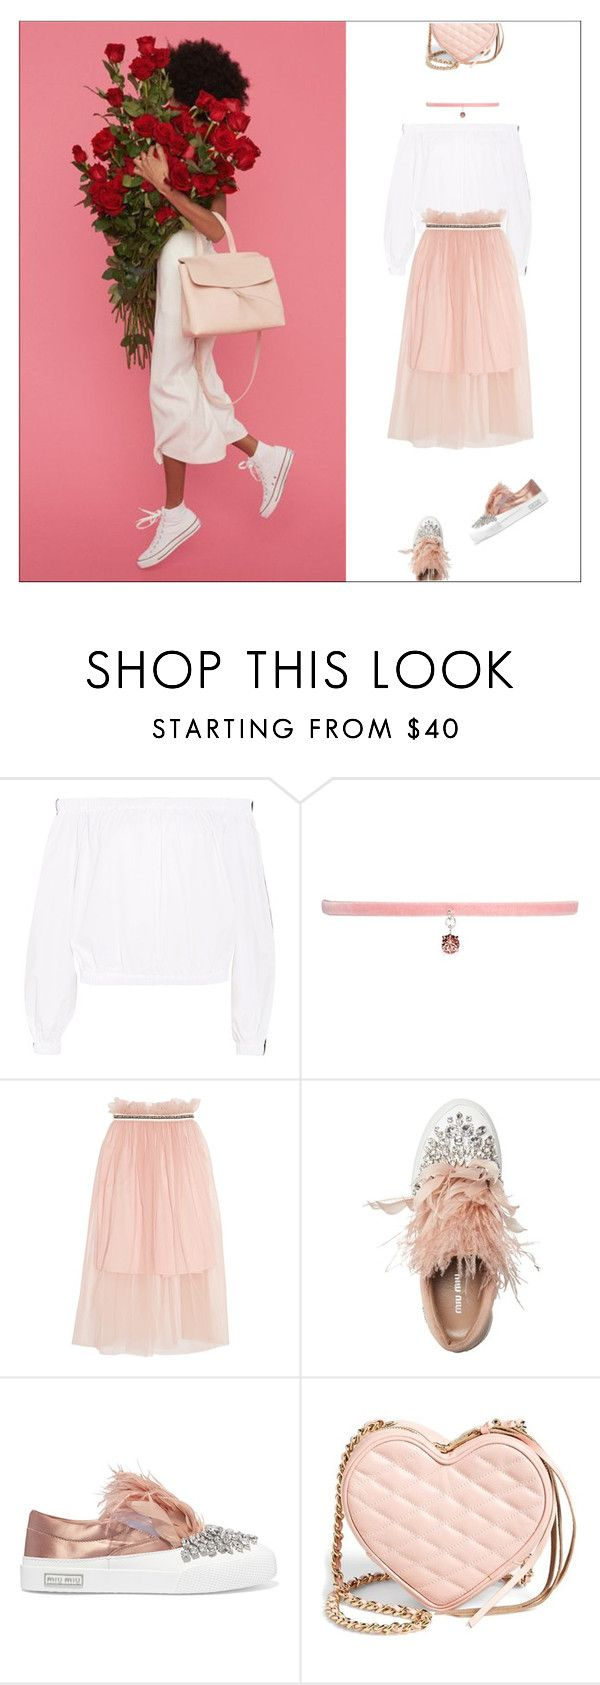 """""""Valentine"""" by shoelover220 ❤ liked on Polyvore featuring Paper London, Joomi Lim, Mansur Gavriel, Mother of Pearl, Miu Miu, Rebecca Minkoff, valentinesday and happyvalentinesday"""